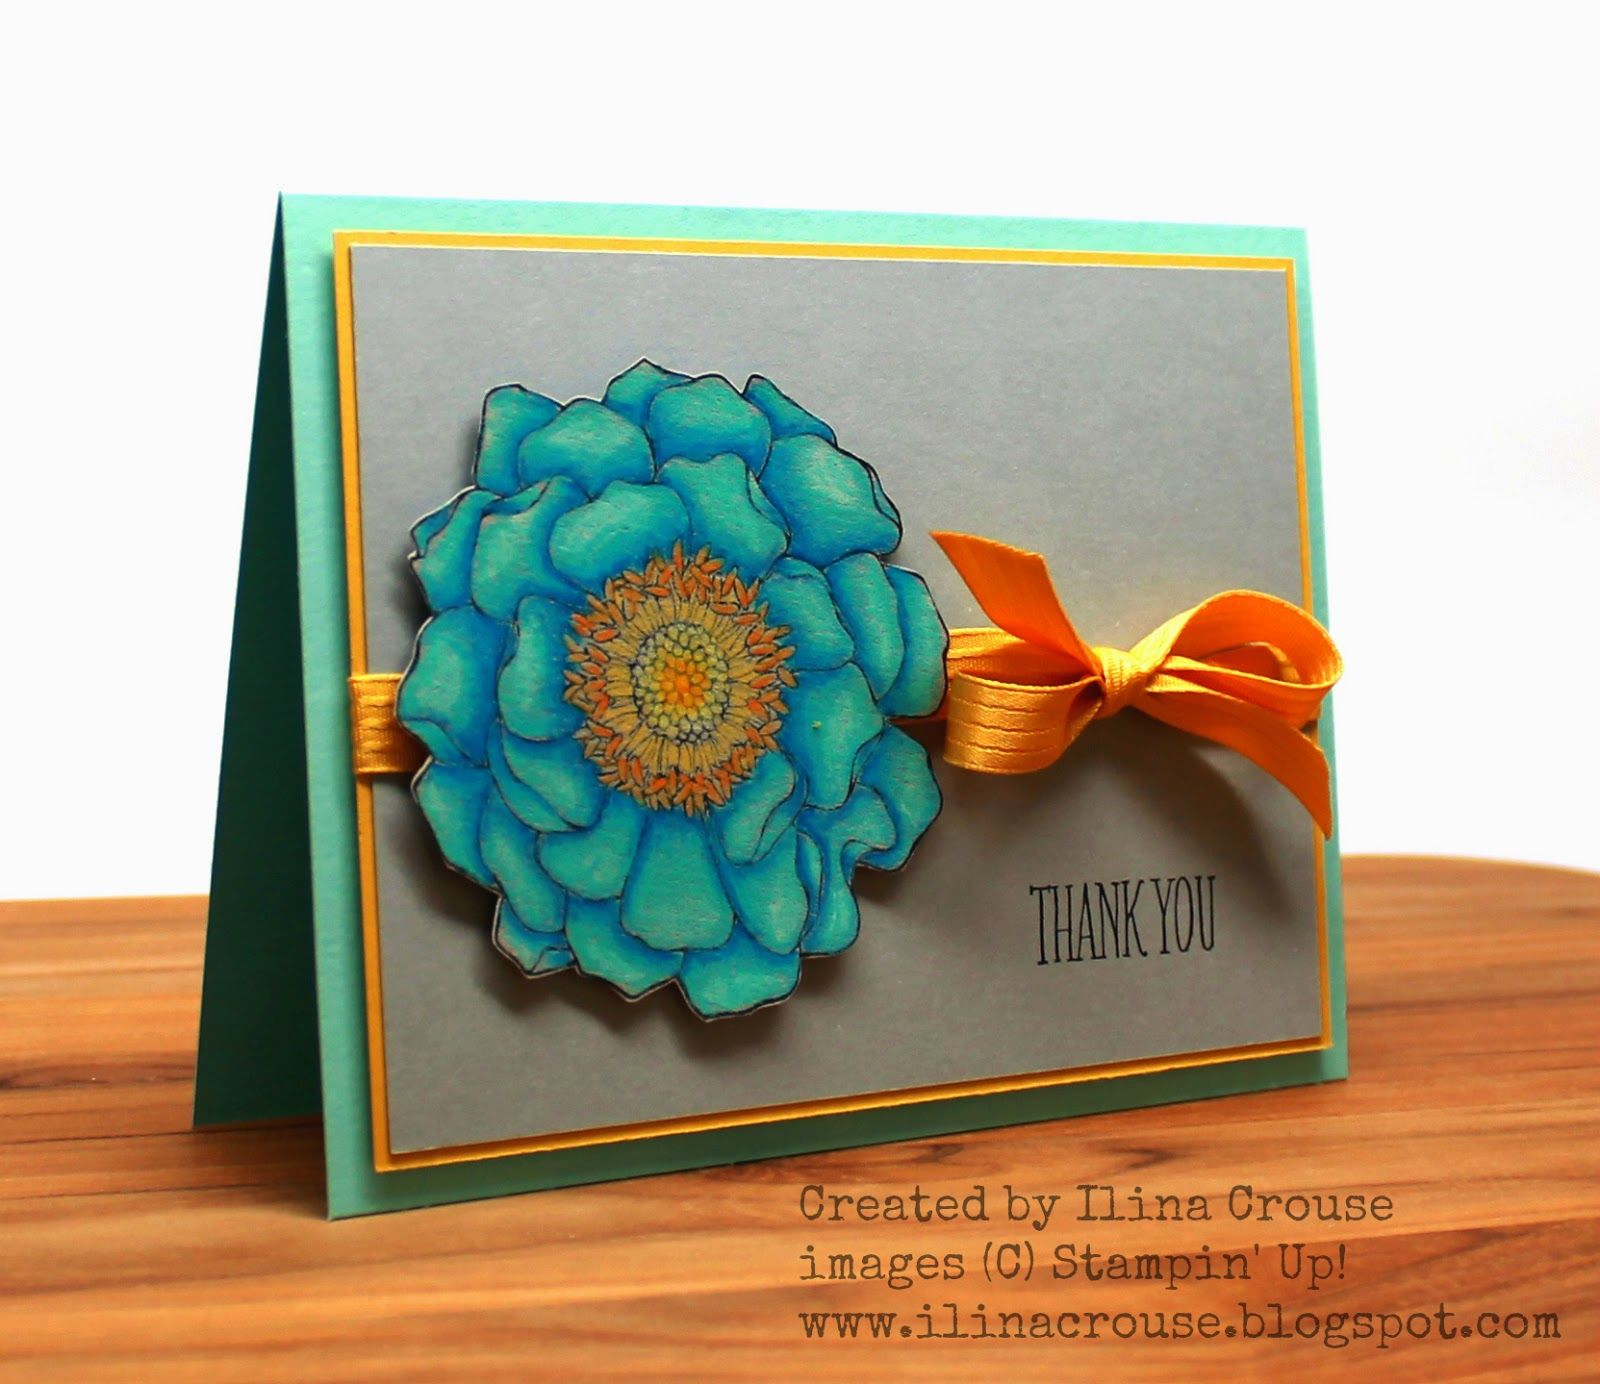 THURSDAY, MAY 15, 2014 Creativity Within : Blended Bloomed, Something to Say, Caran D'ache Luminance Pencils, Hello Honey card stock and ribbon